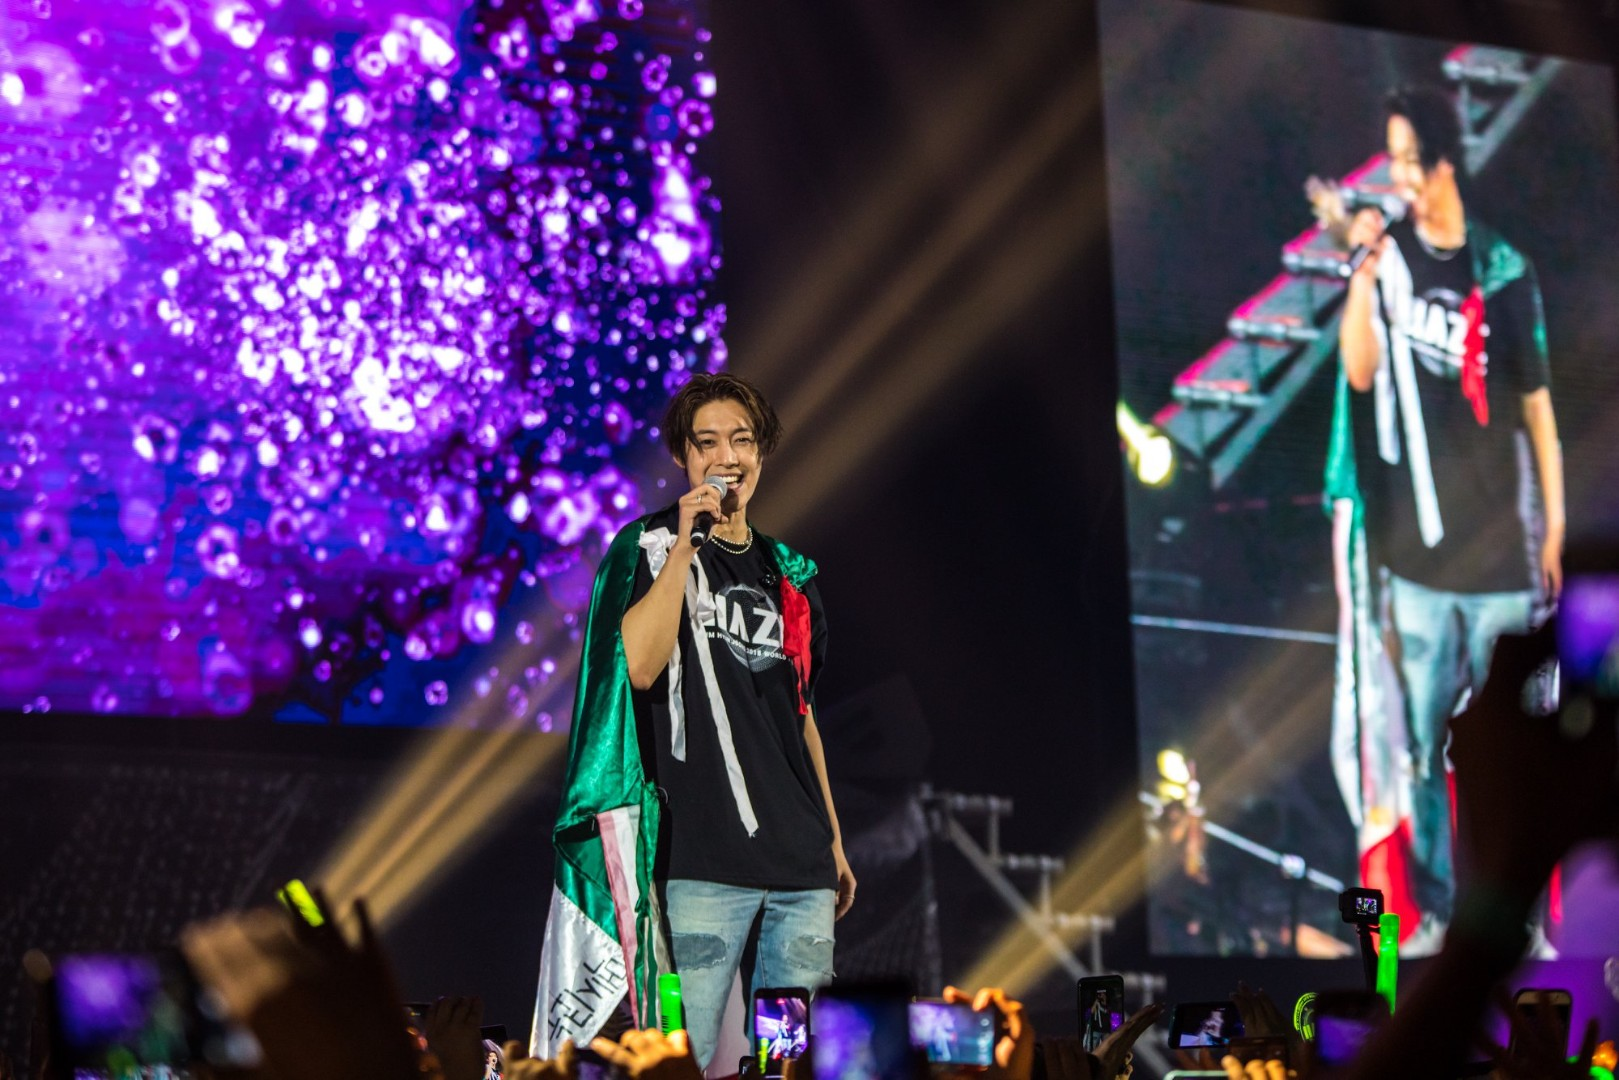 [Big J Entertainment Mx Photo] Hyun Joong World Tour HAZE in Mexico [2018.03.20]